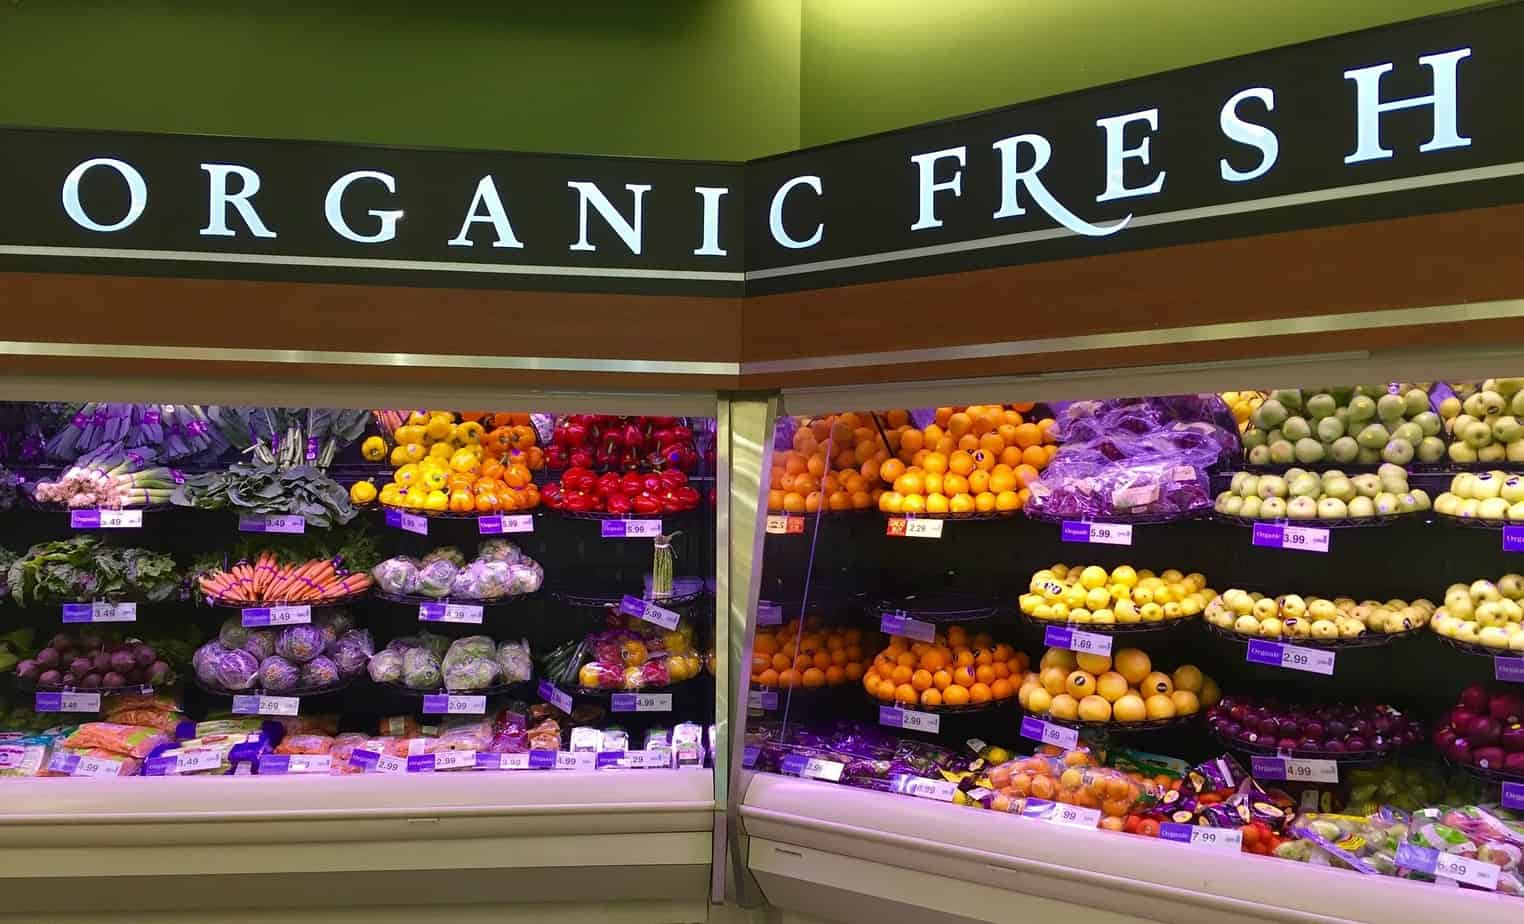 Is Sprouts Market All Organic?